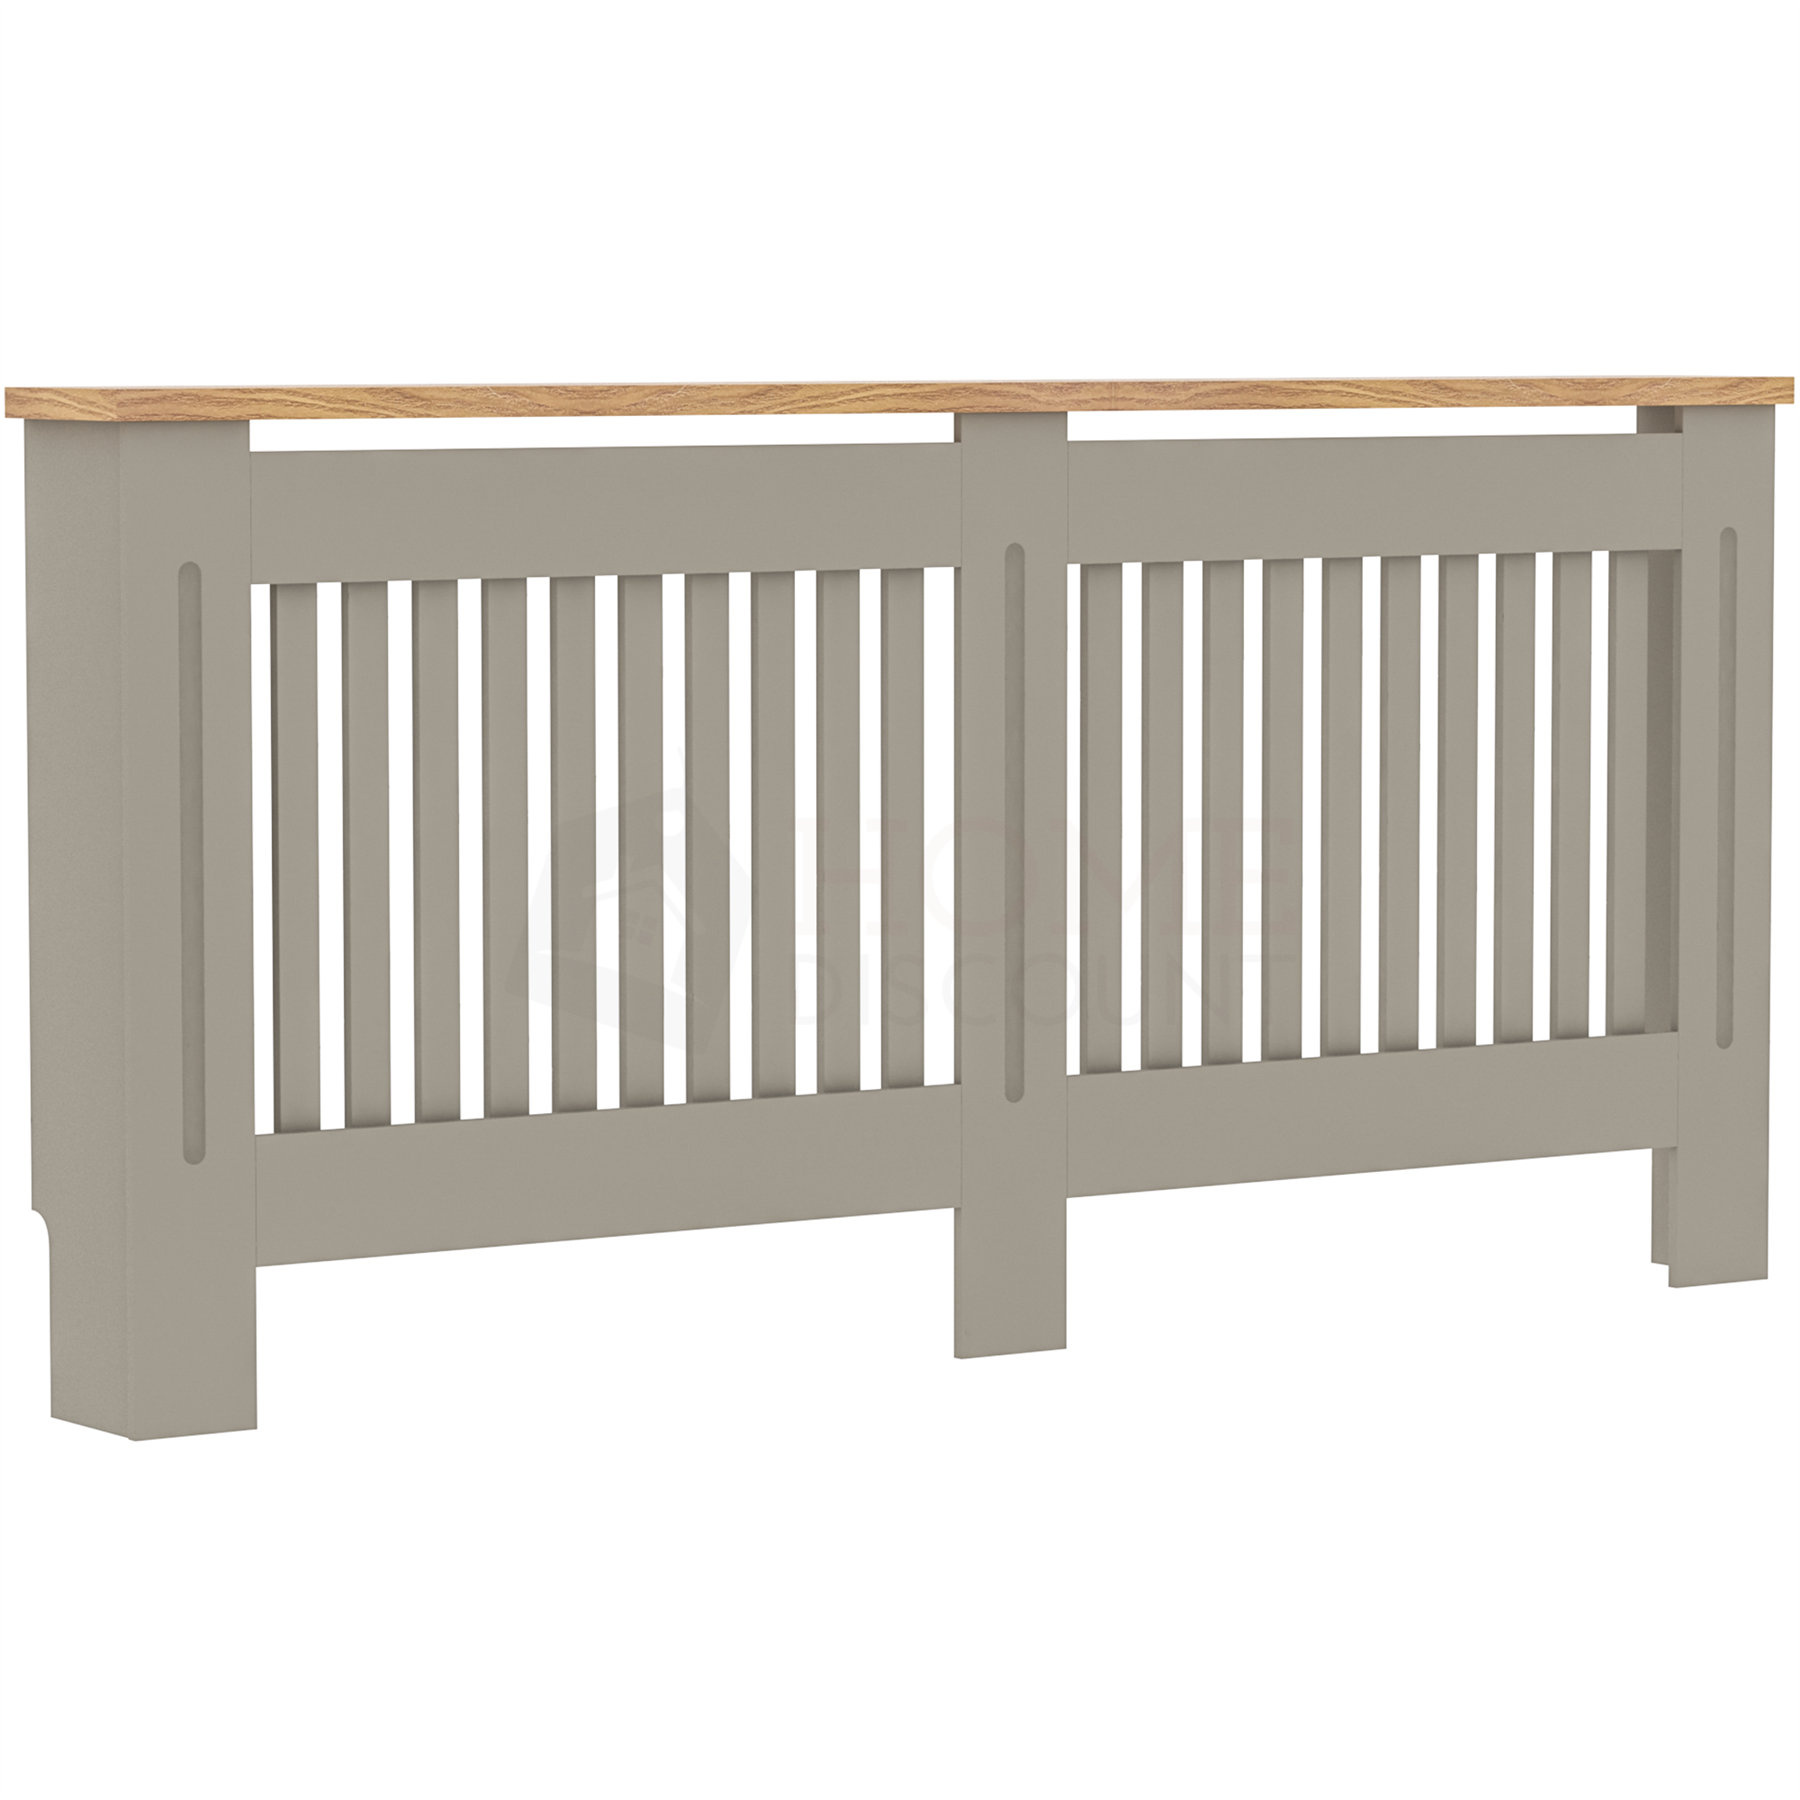 Radiateur-Housse-Blanc-inachevee-MODERNE-BOIS-TRADITIONNELLE-Grill-cabinet-furniture miniature 65